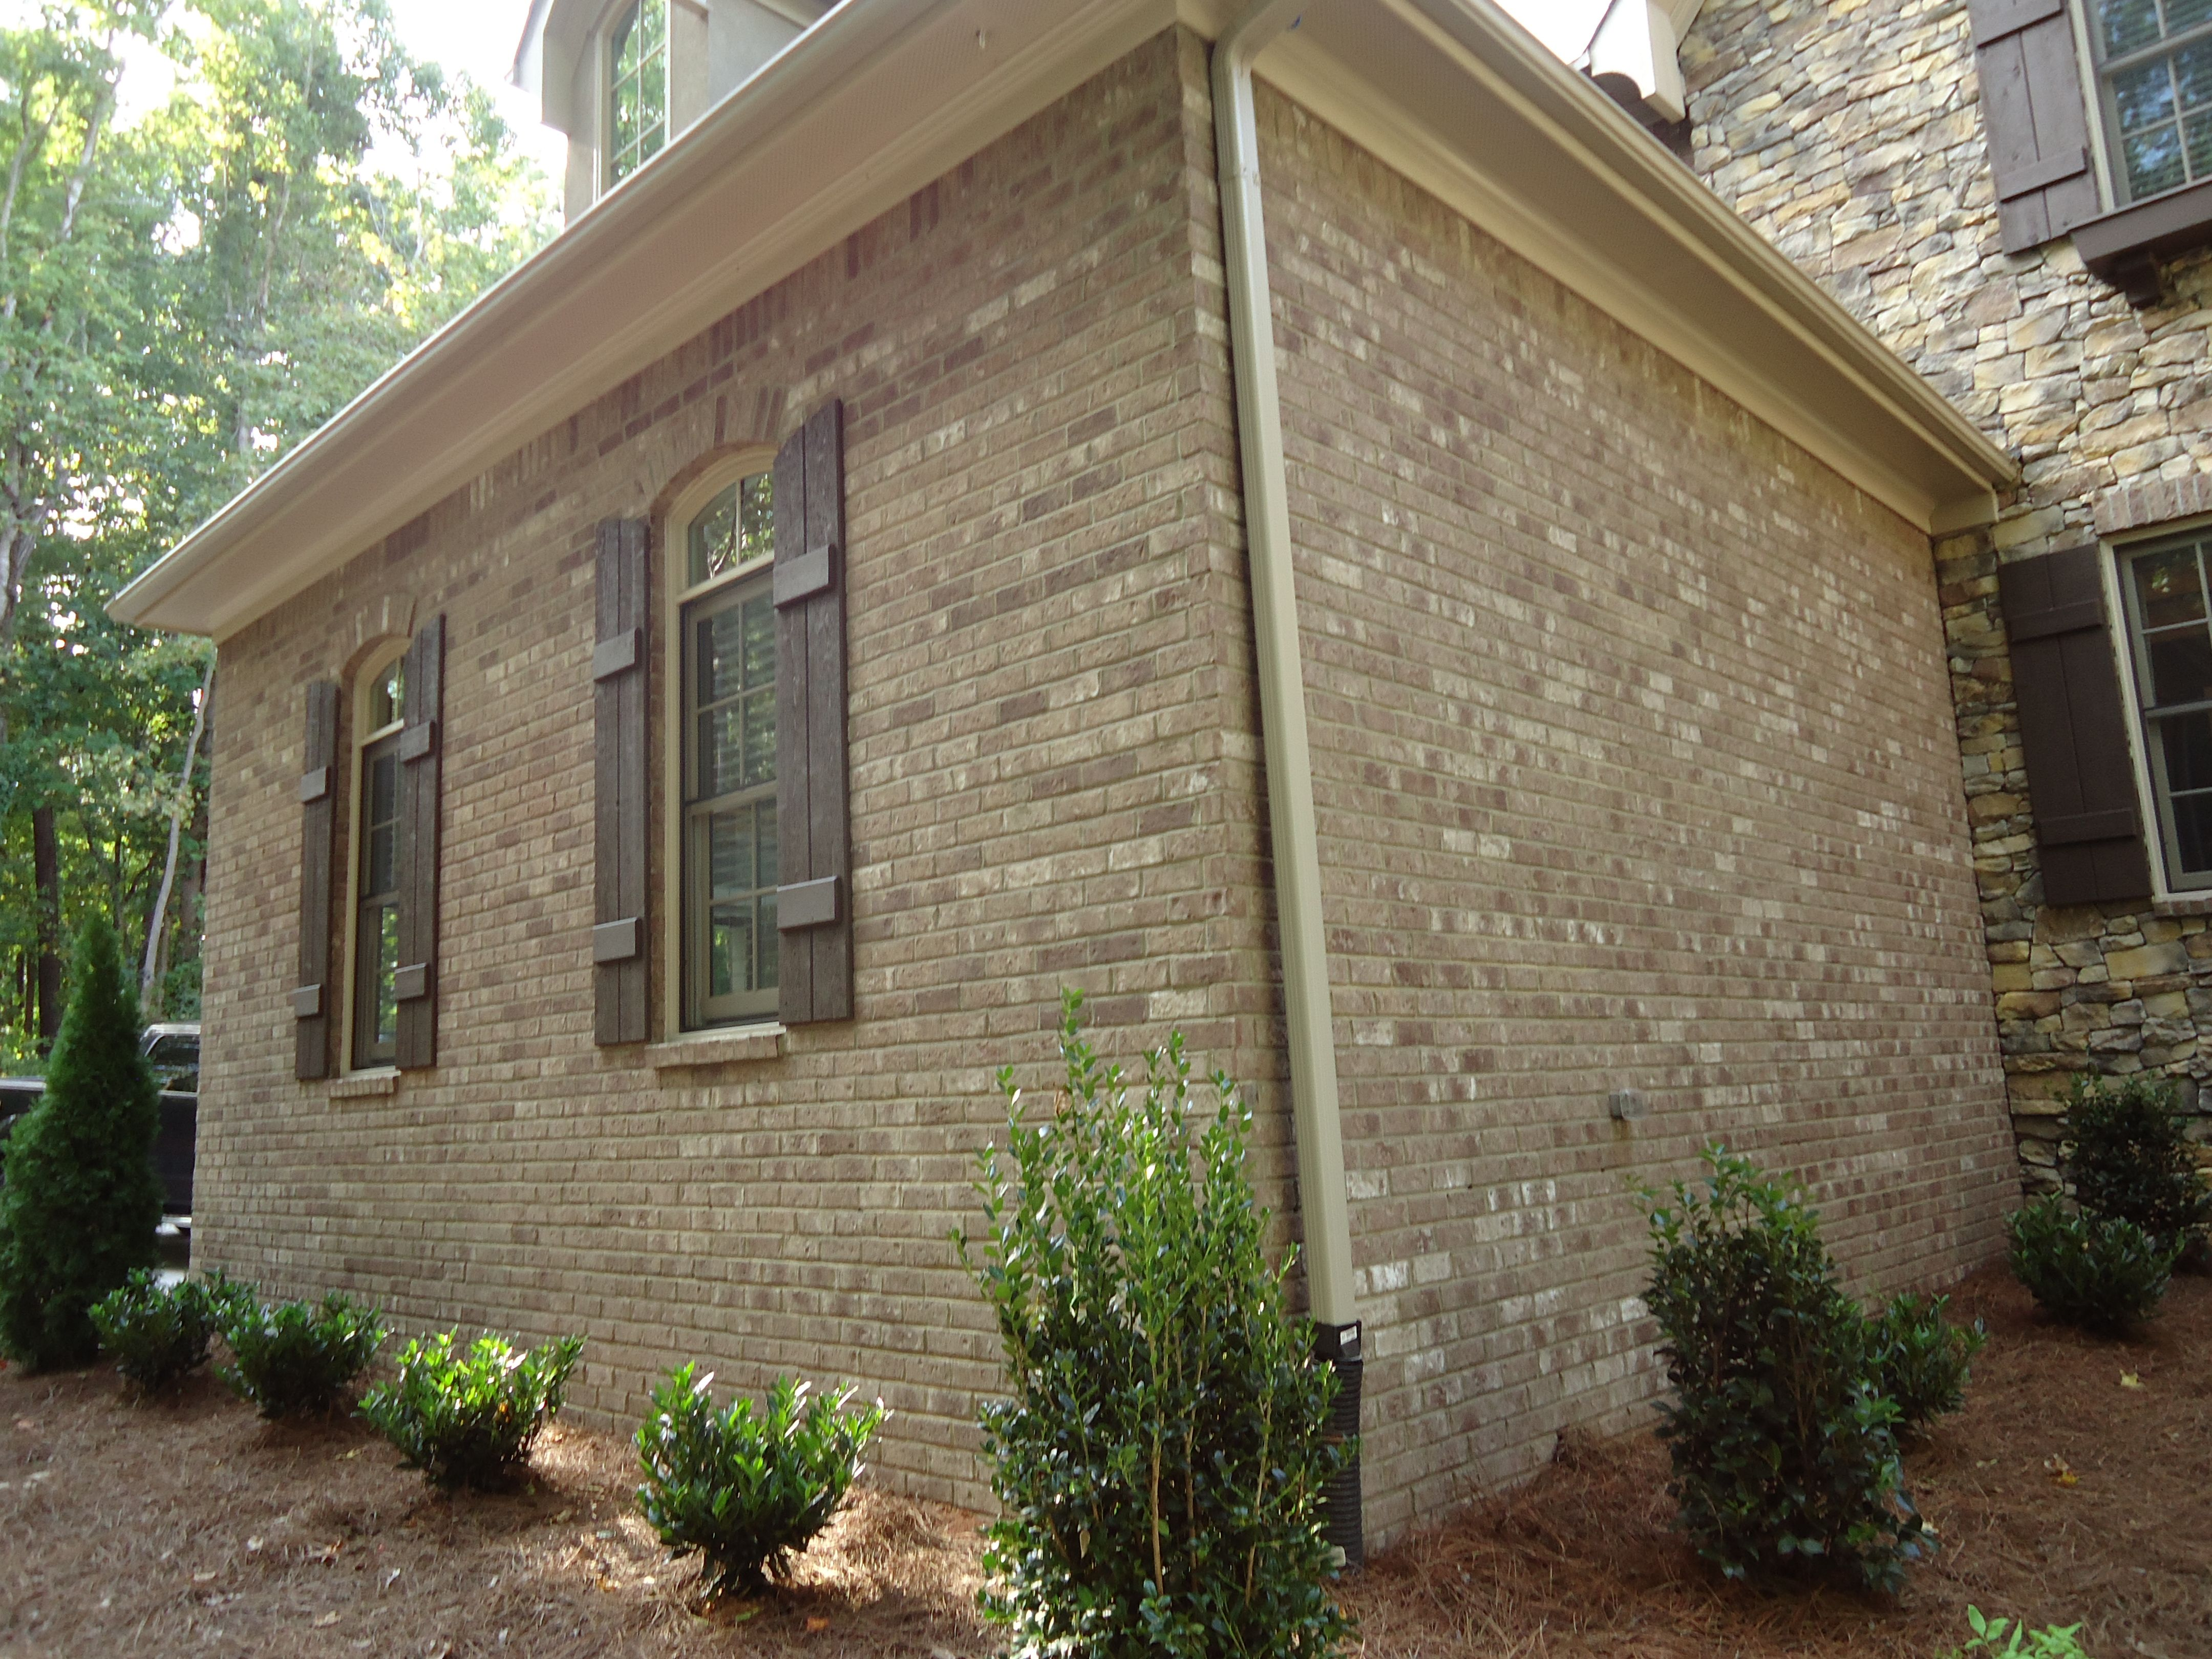 French cottage exterior - Arh Asheville Plan Exterior 30 Brick Boral Savannah Gray Shutters